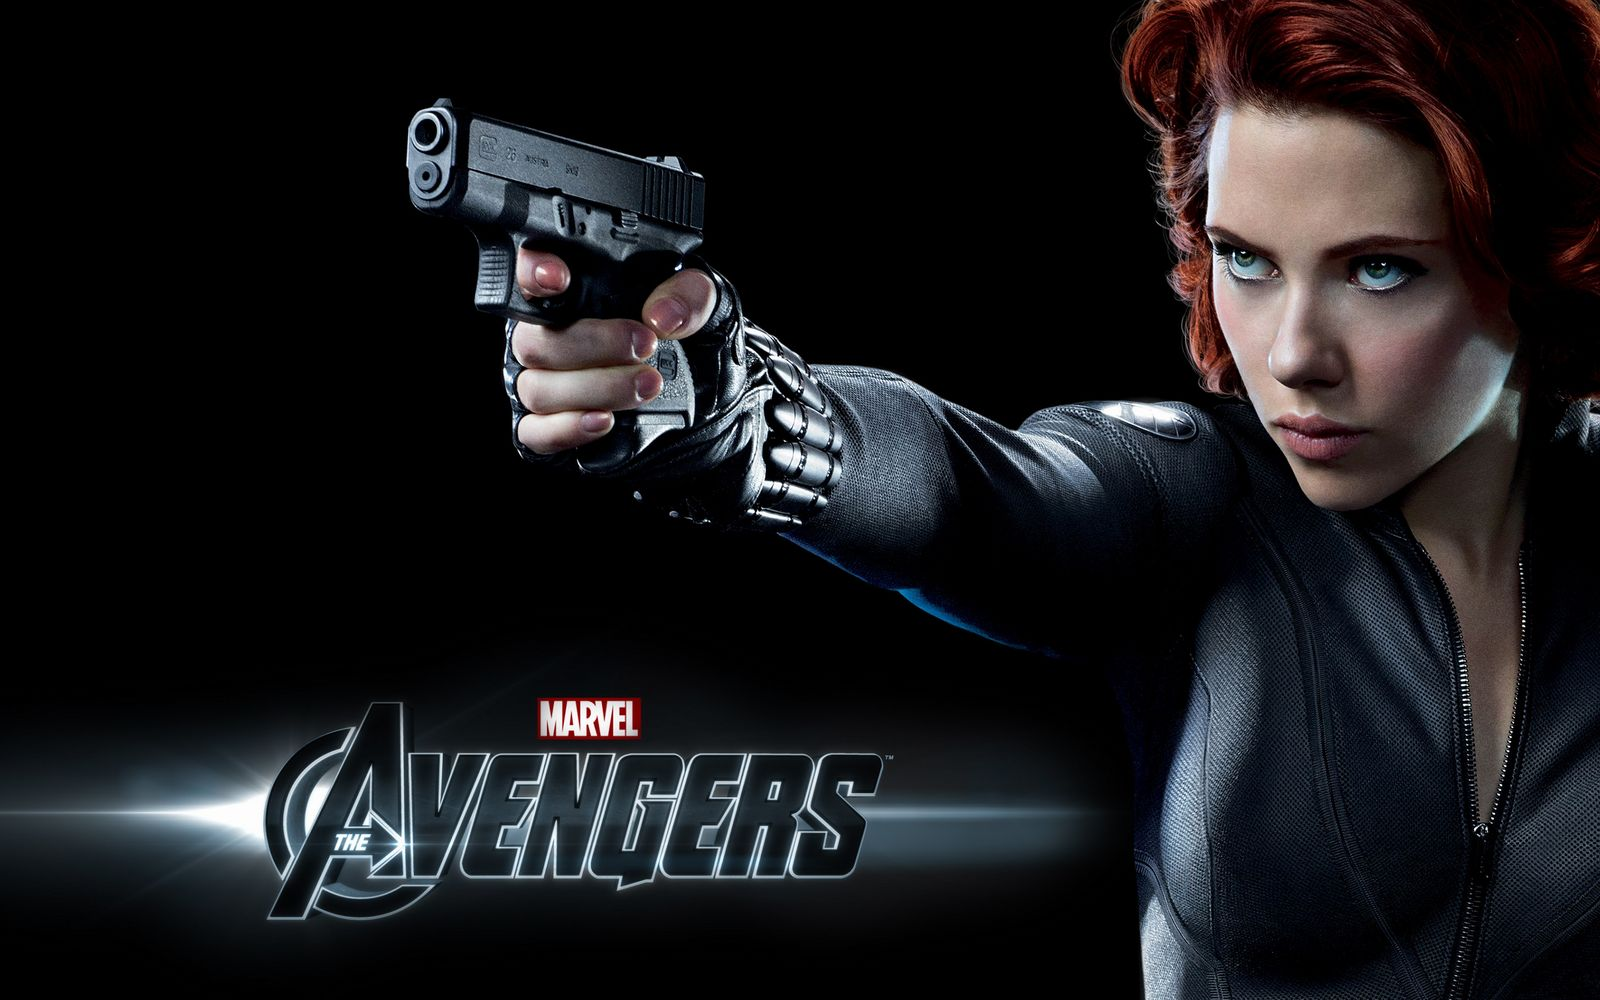 scarlett johansson in the avengers wide